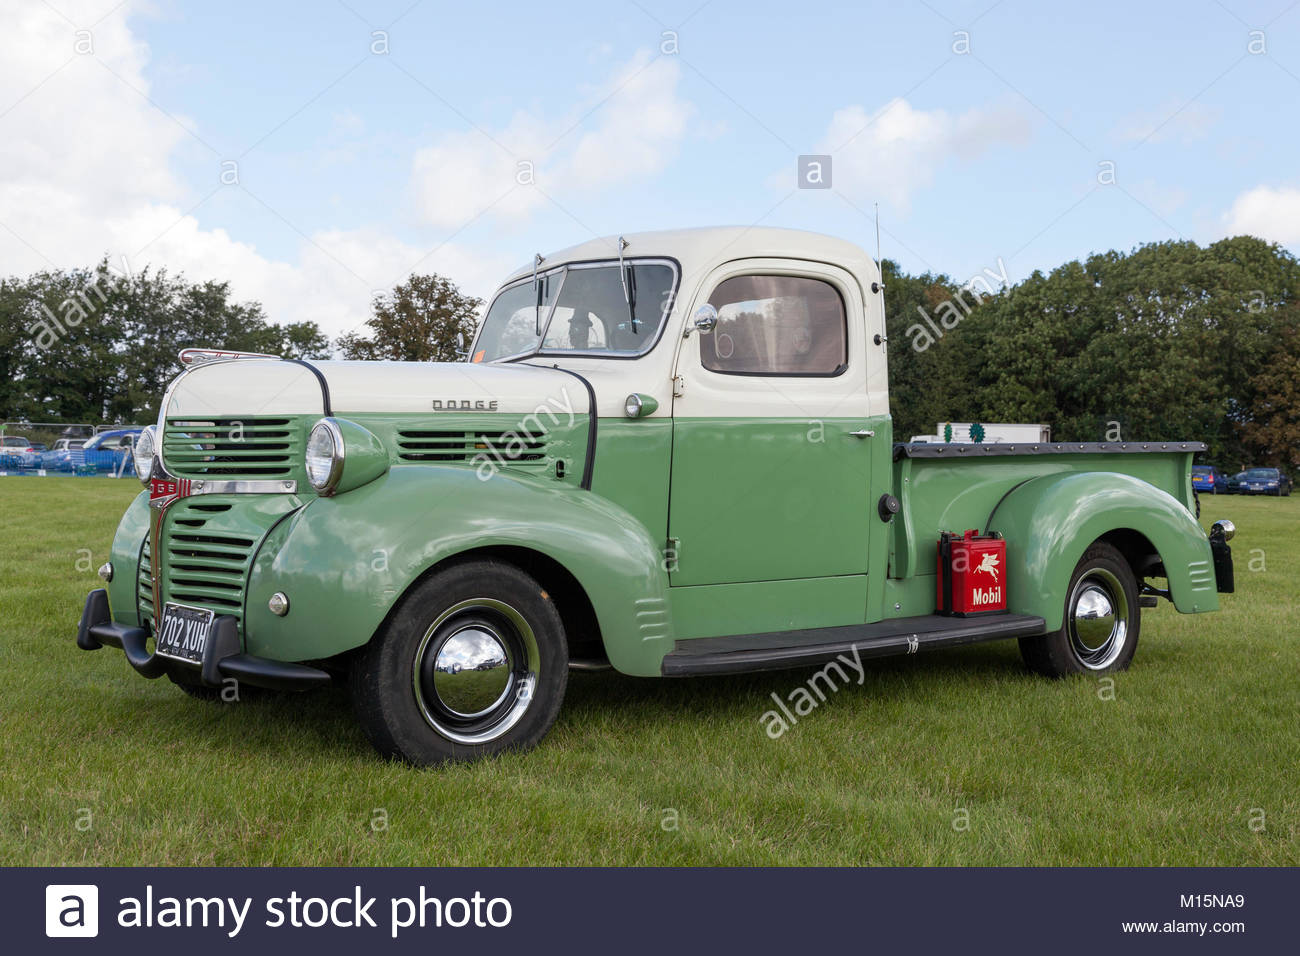 1940s Truck Stock Photos Images Alamy 1949 Dodge Panel Van Pick Up From The Late Image